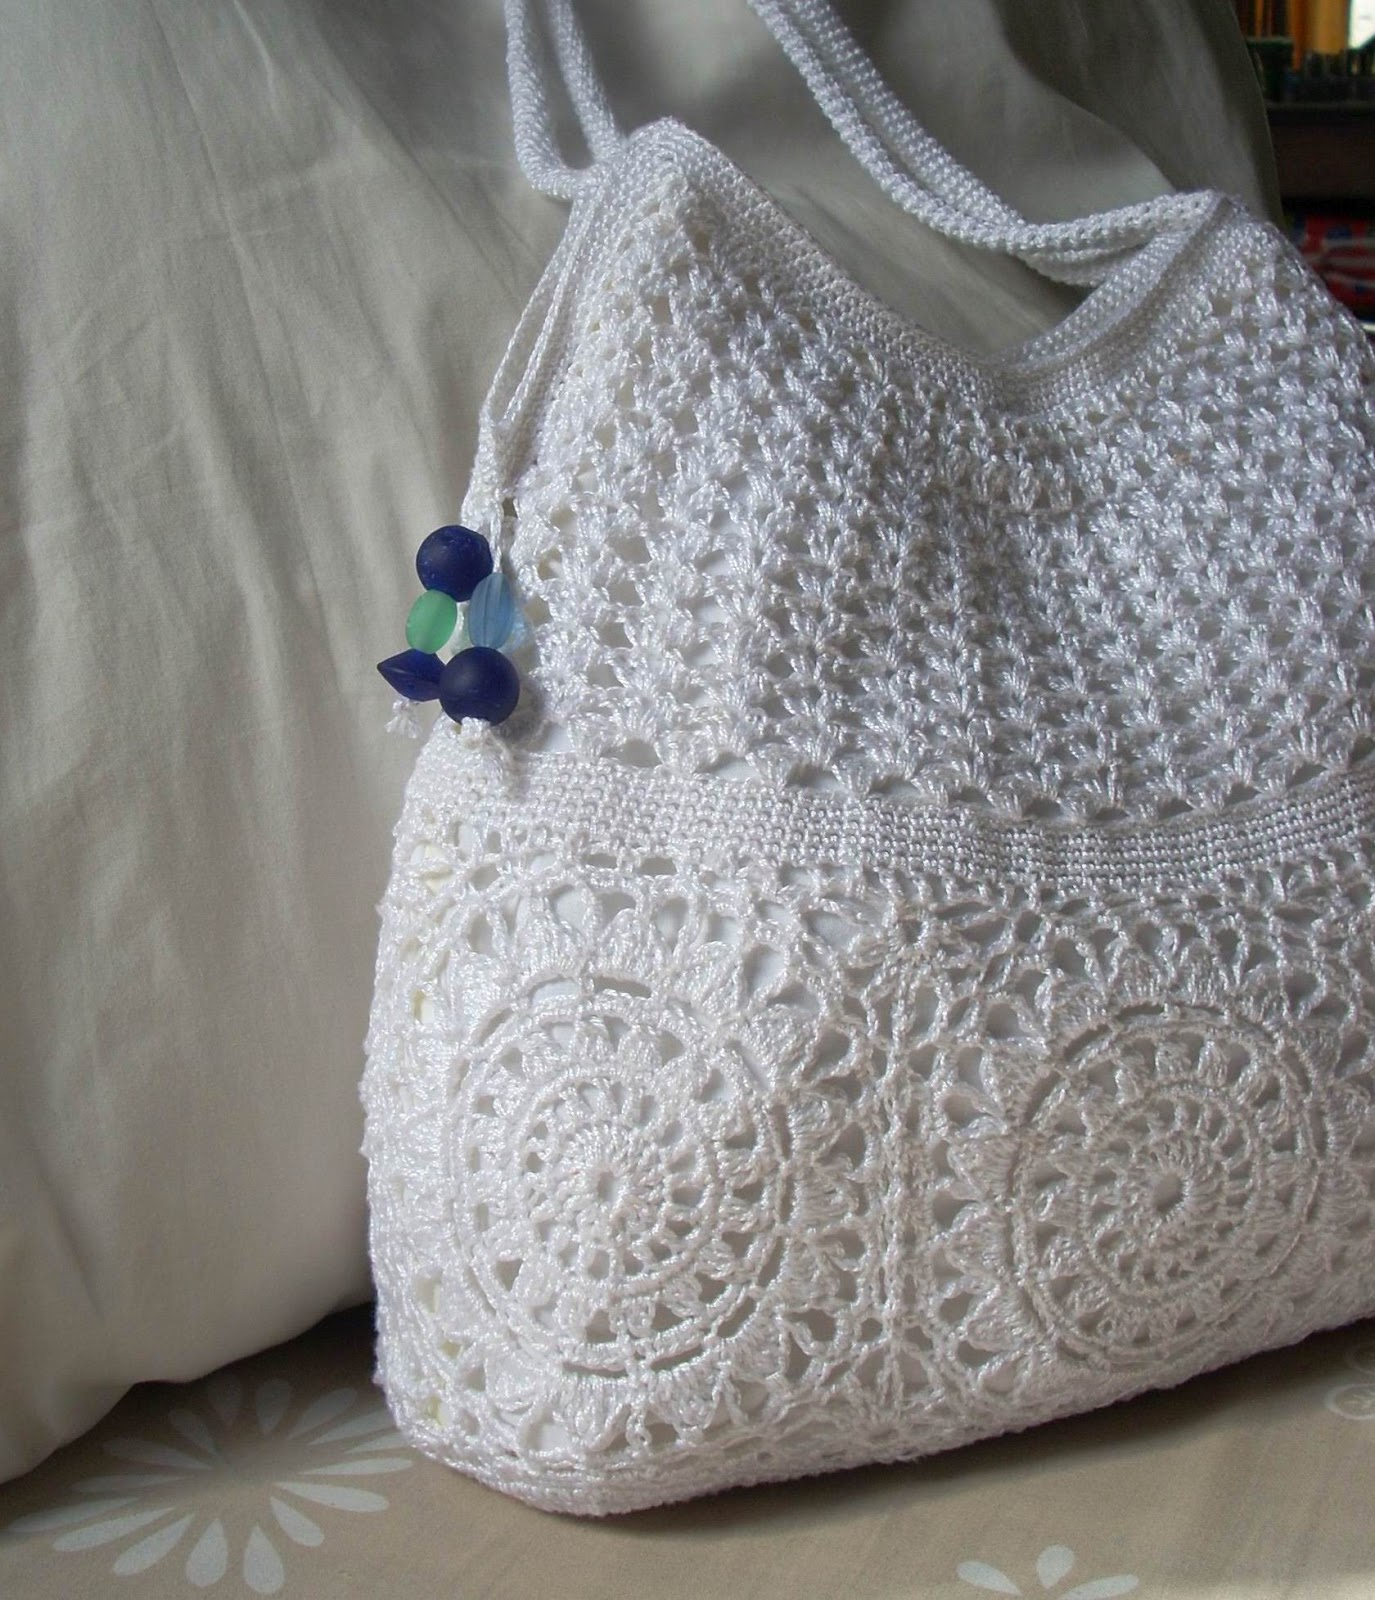 Crochet Stitches On Pinterest : Related to Free Crochet Purse & Bag Patterns . on Pinterest Crochet